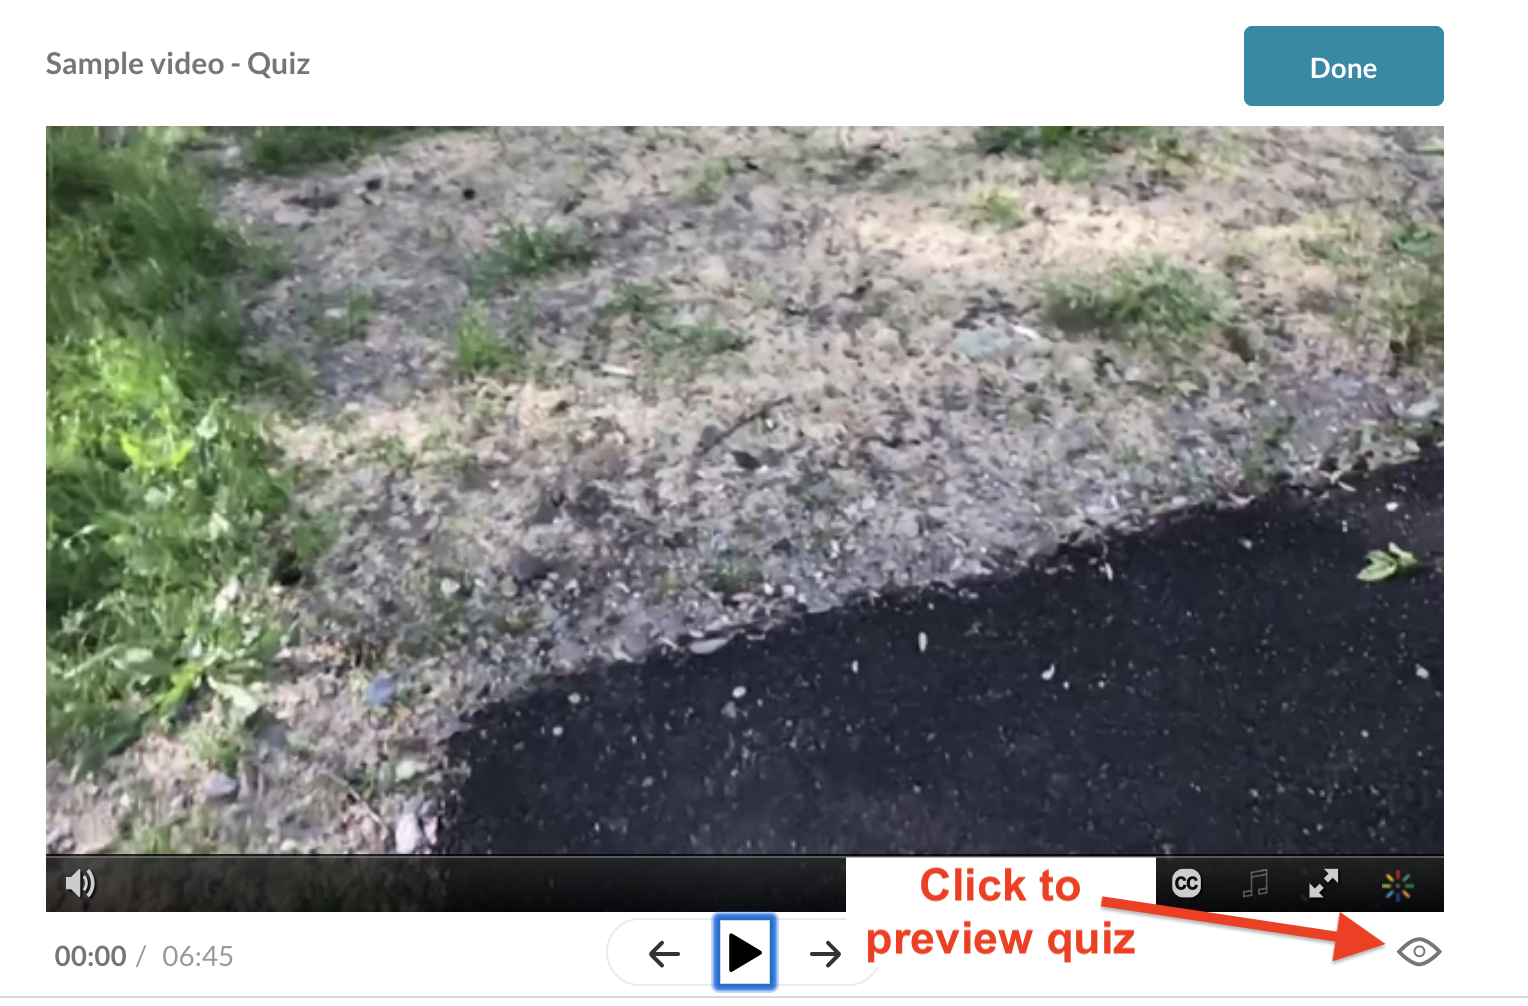 screenshot of video quiz with callout to preview button